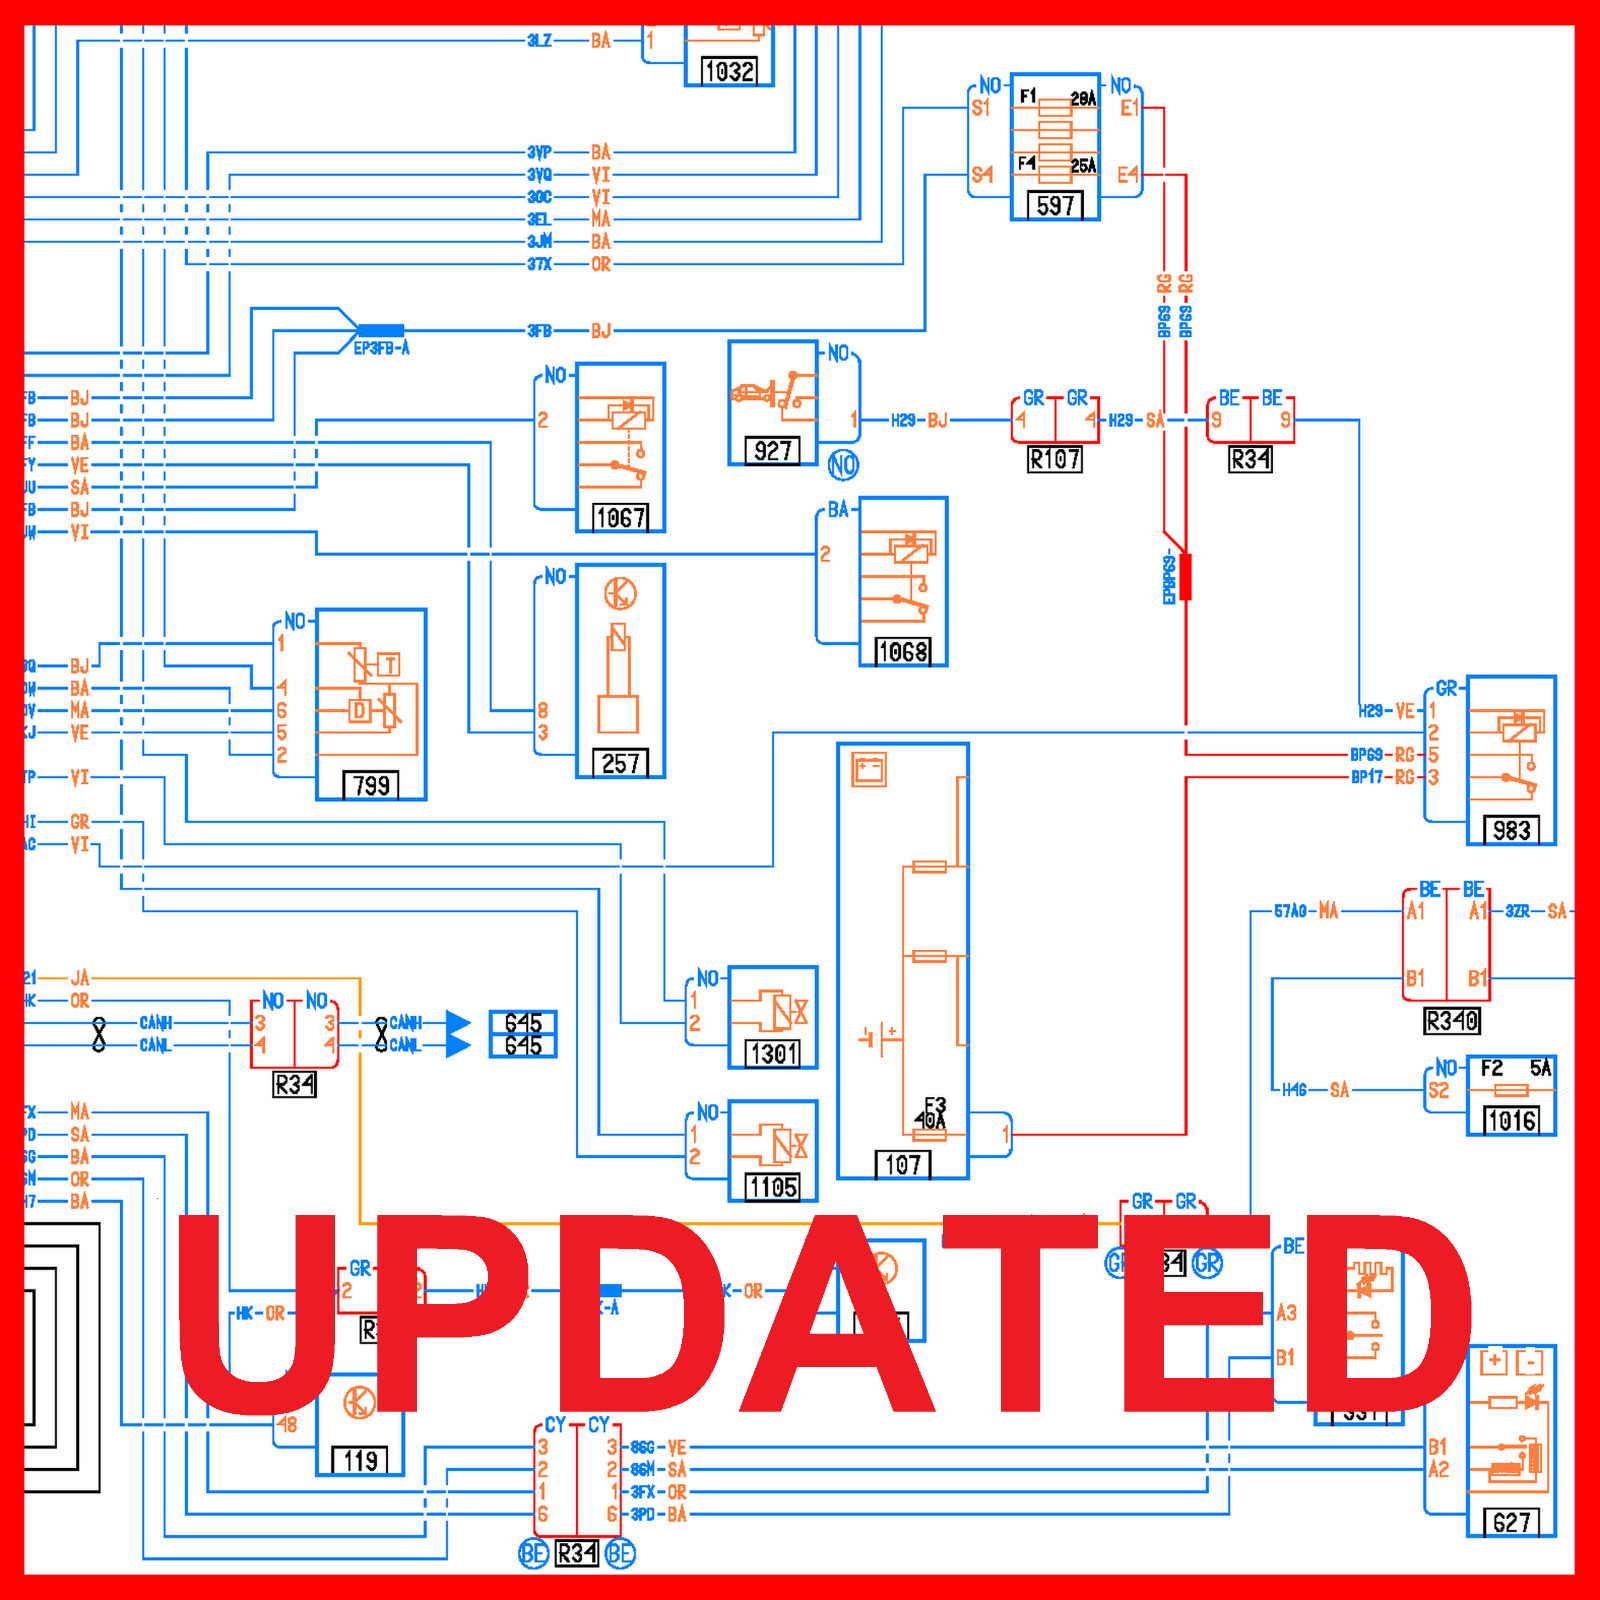 Renault Visu Wiring Diagrams For Download Dont Wait Get Optical Mouse Diagram Electronic Free Image About Today 1 Of 12free Shipping